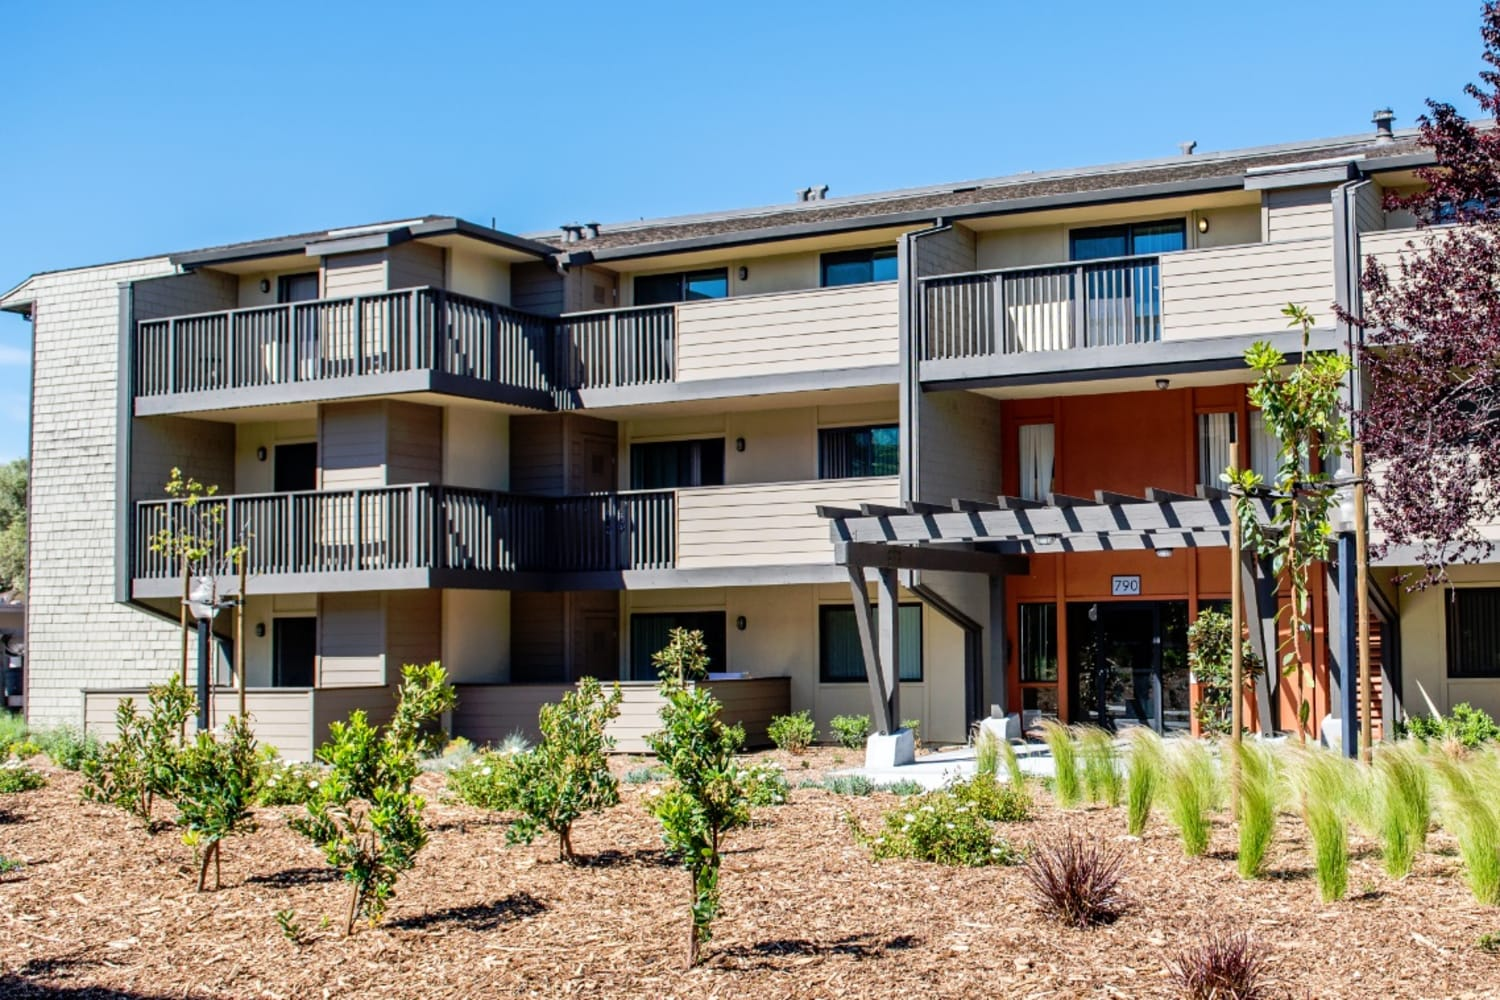 Harbor Cove Apartments in Foster City, California, has well-kept grounds